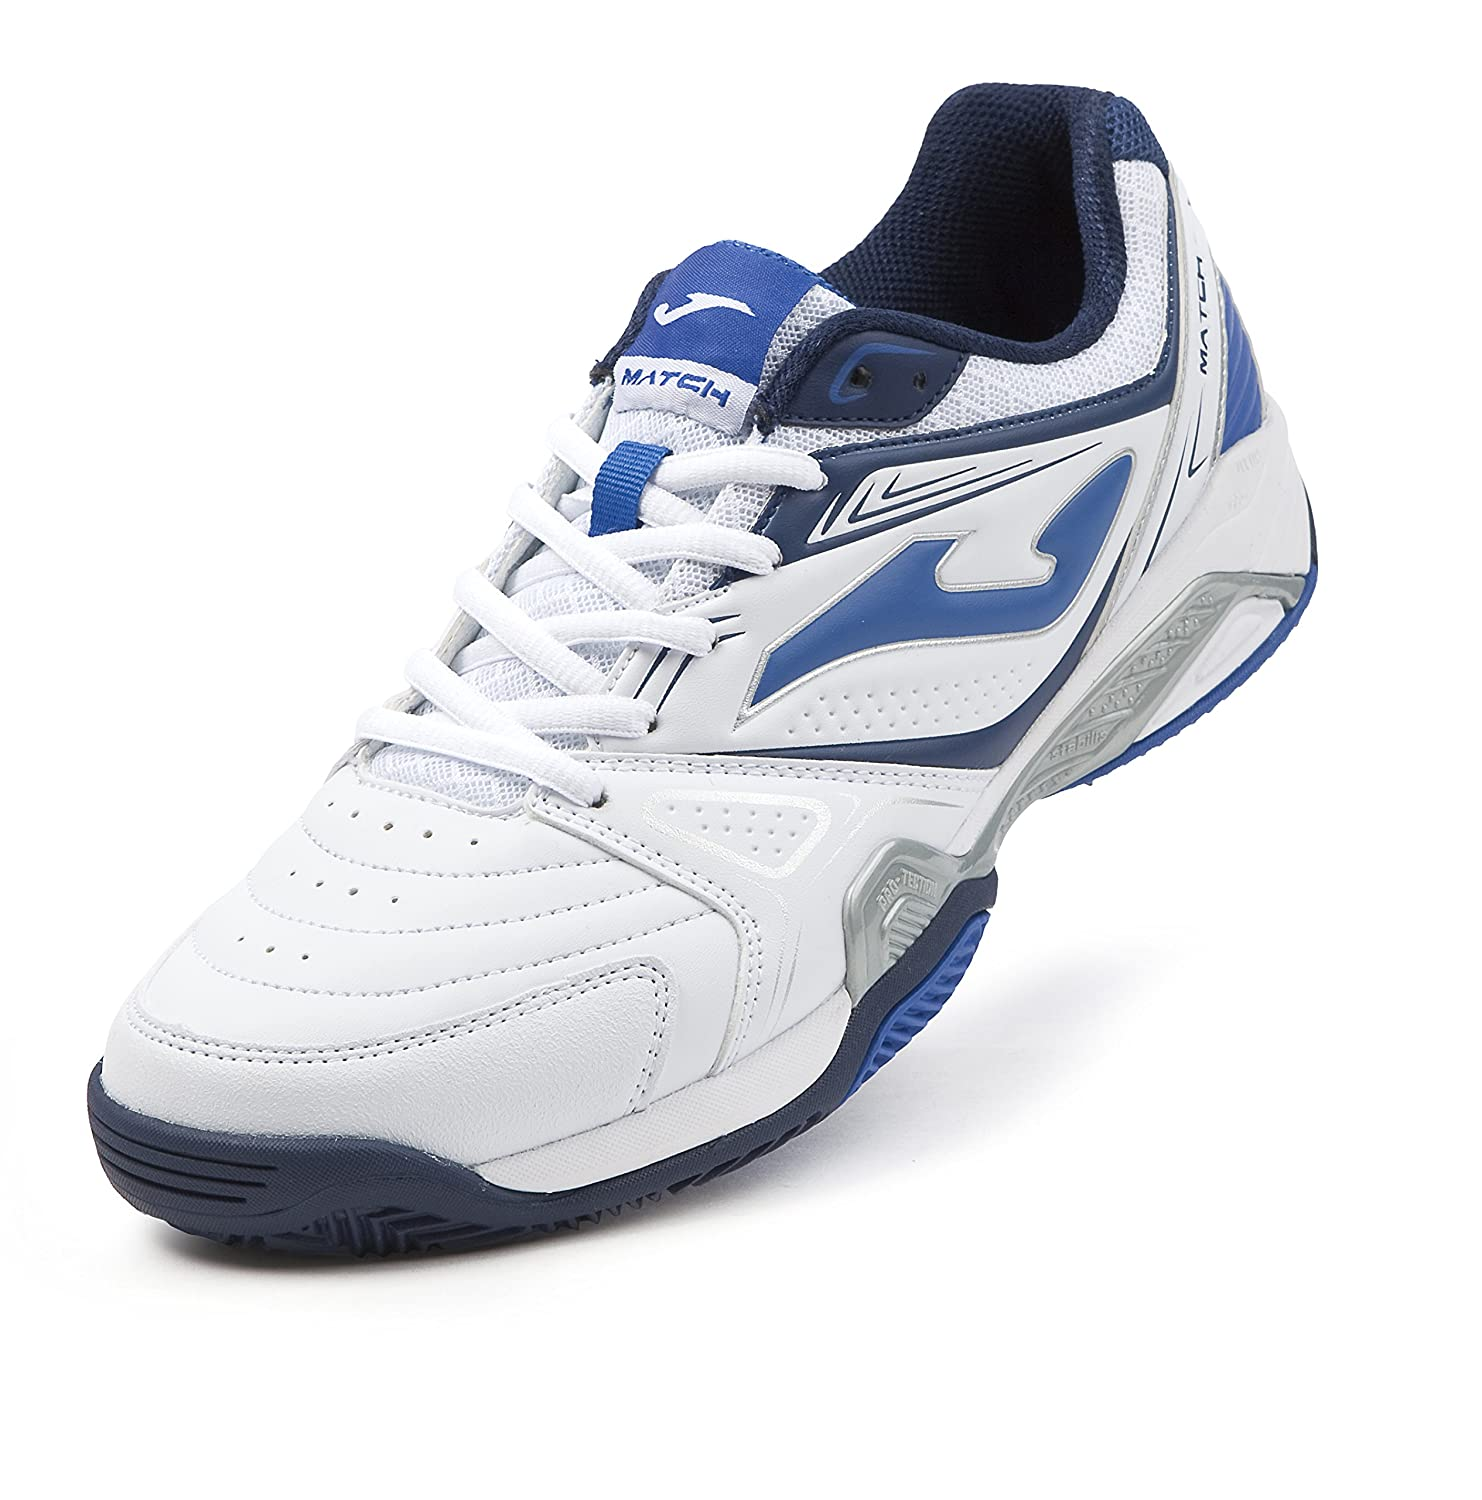 Joma Zapatillas T.Match 605 Clay White Royal: Amazon.es: Deportes ...